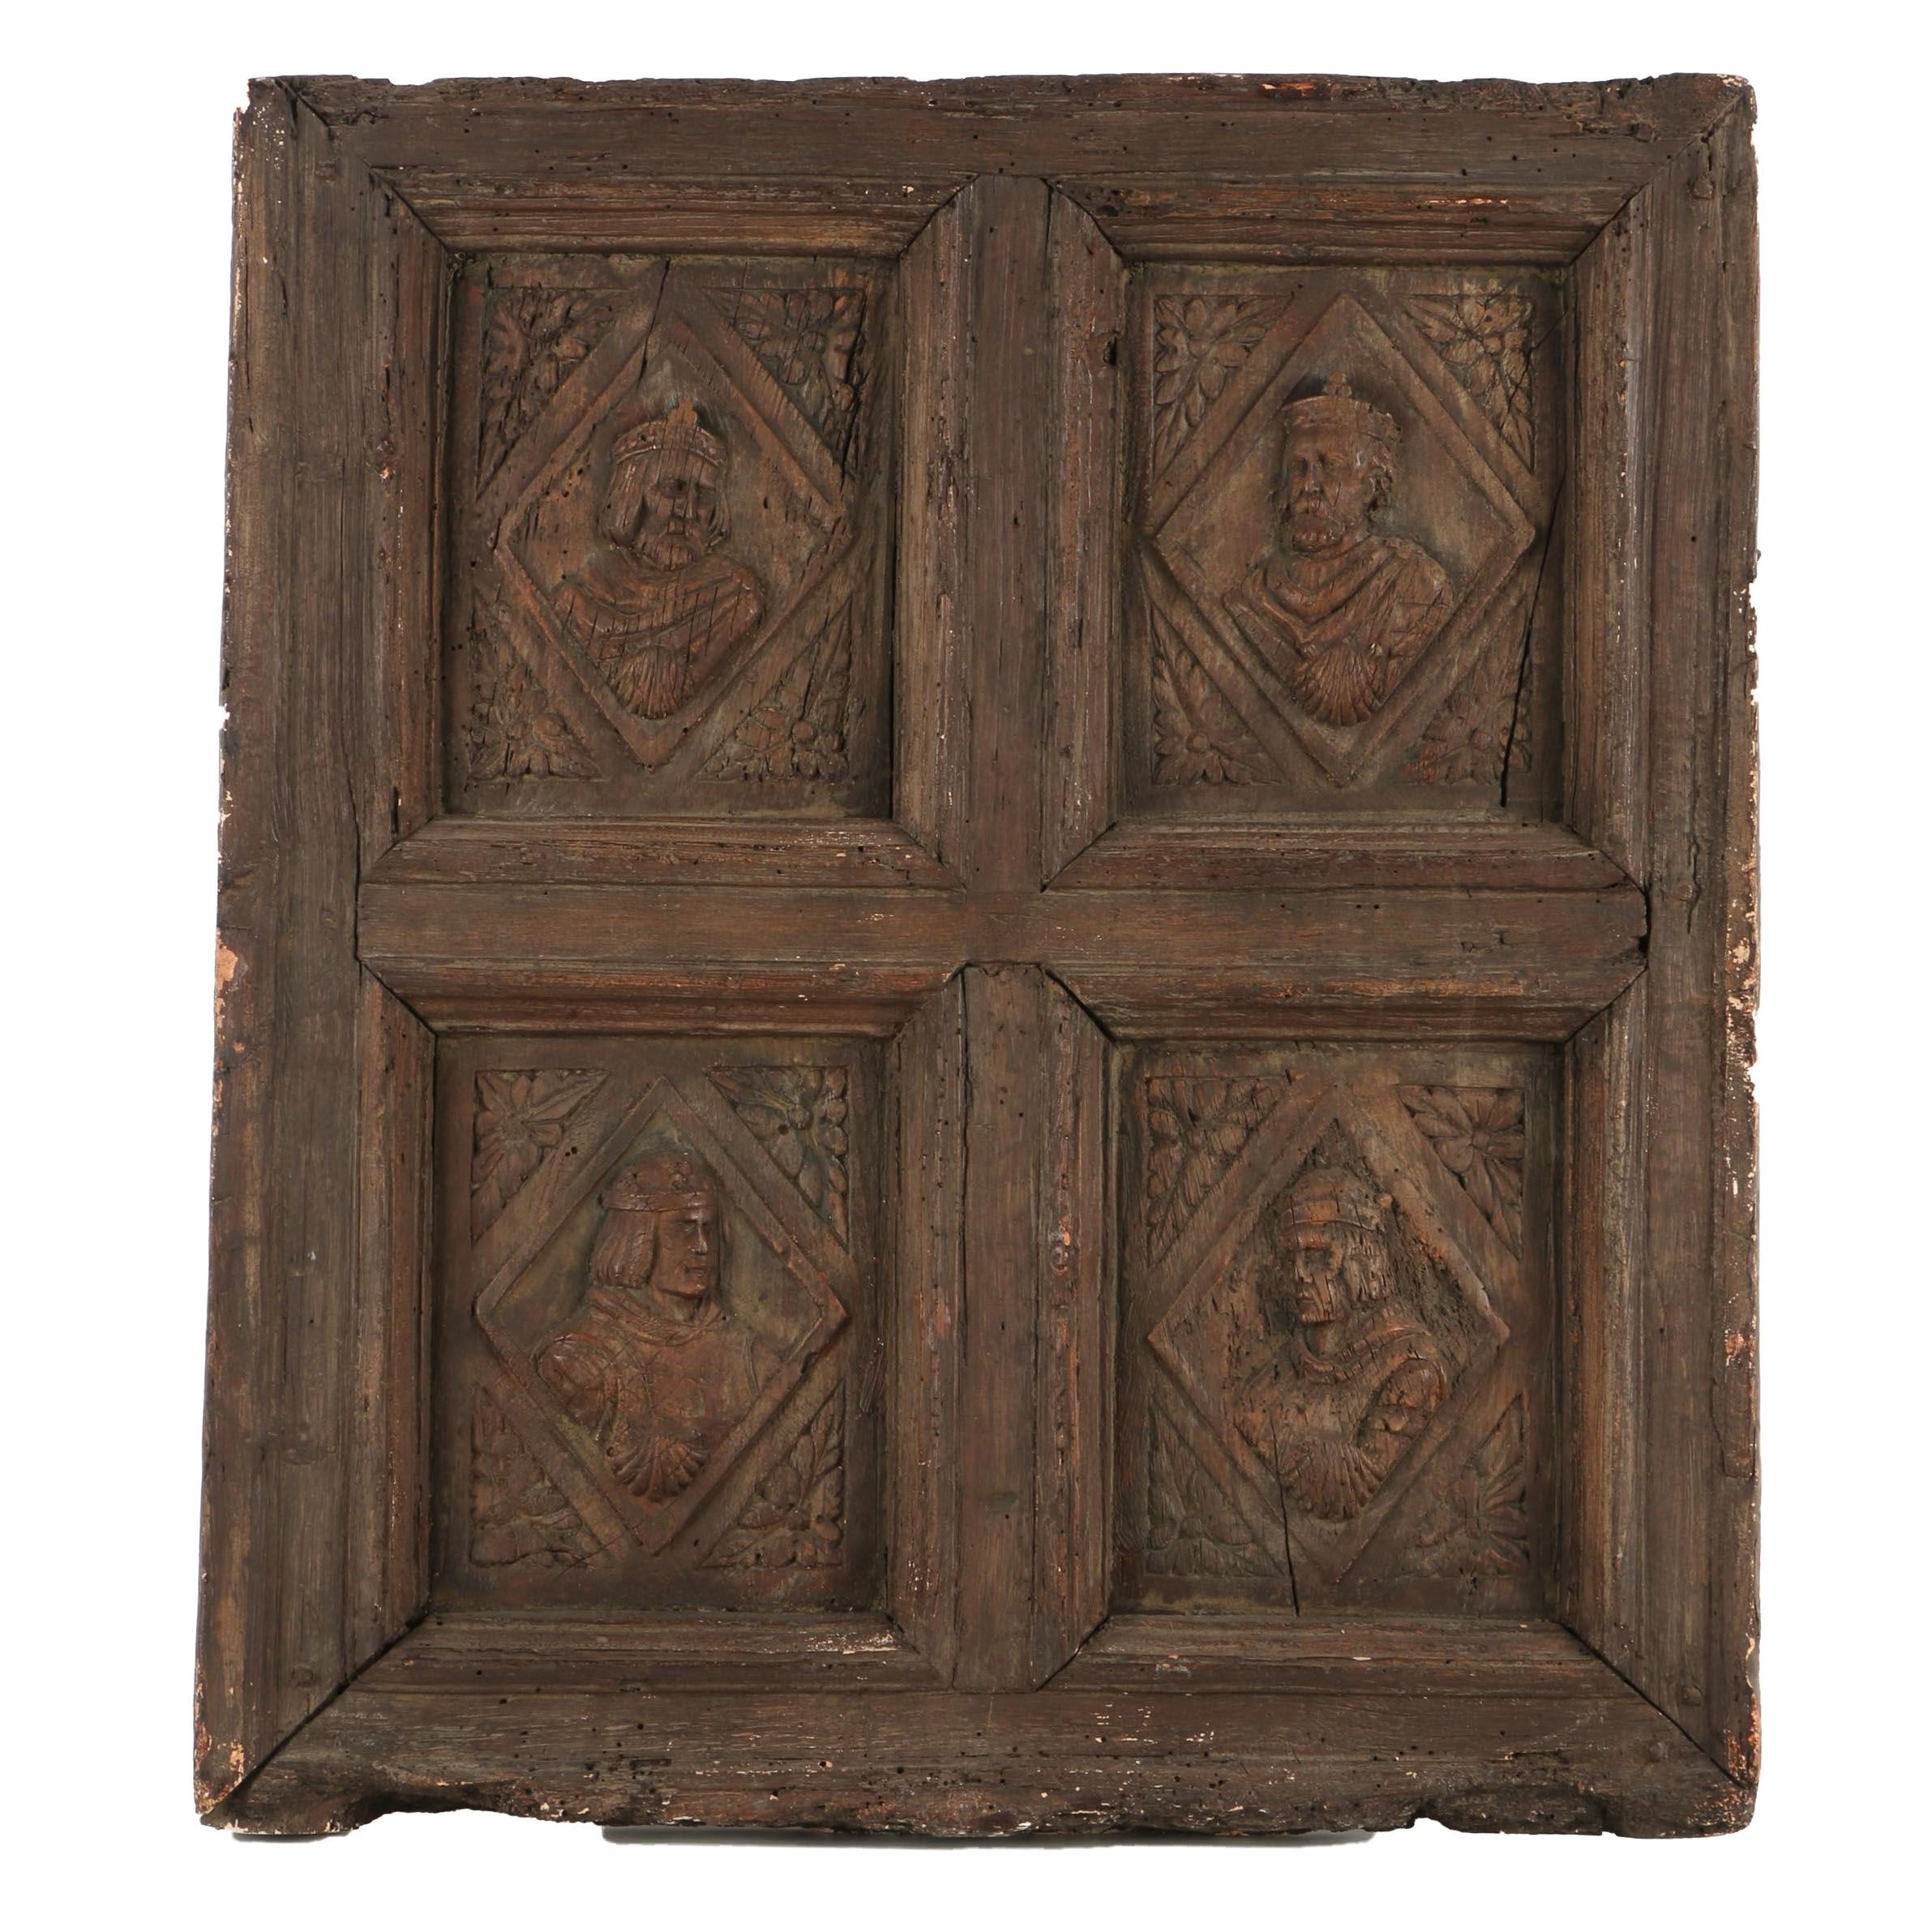 Reproduction Door Panel with Historical Figures